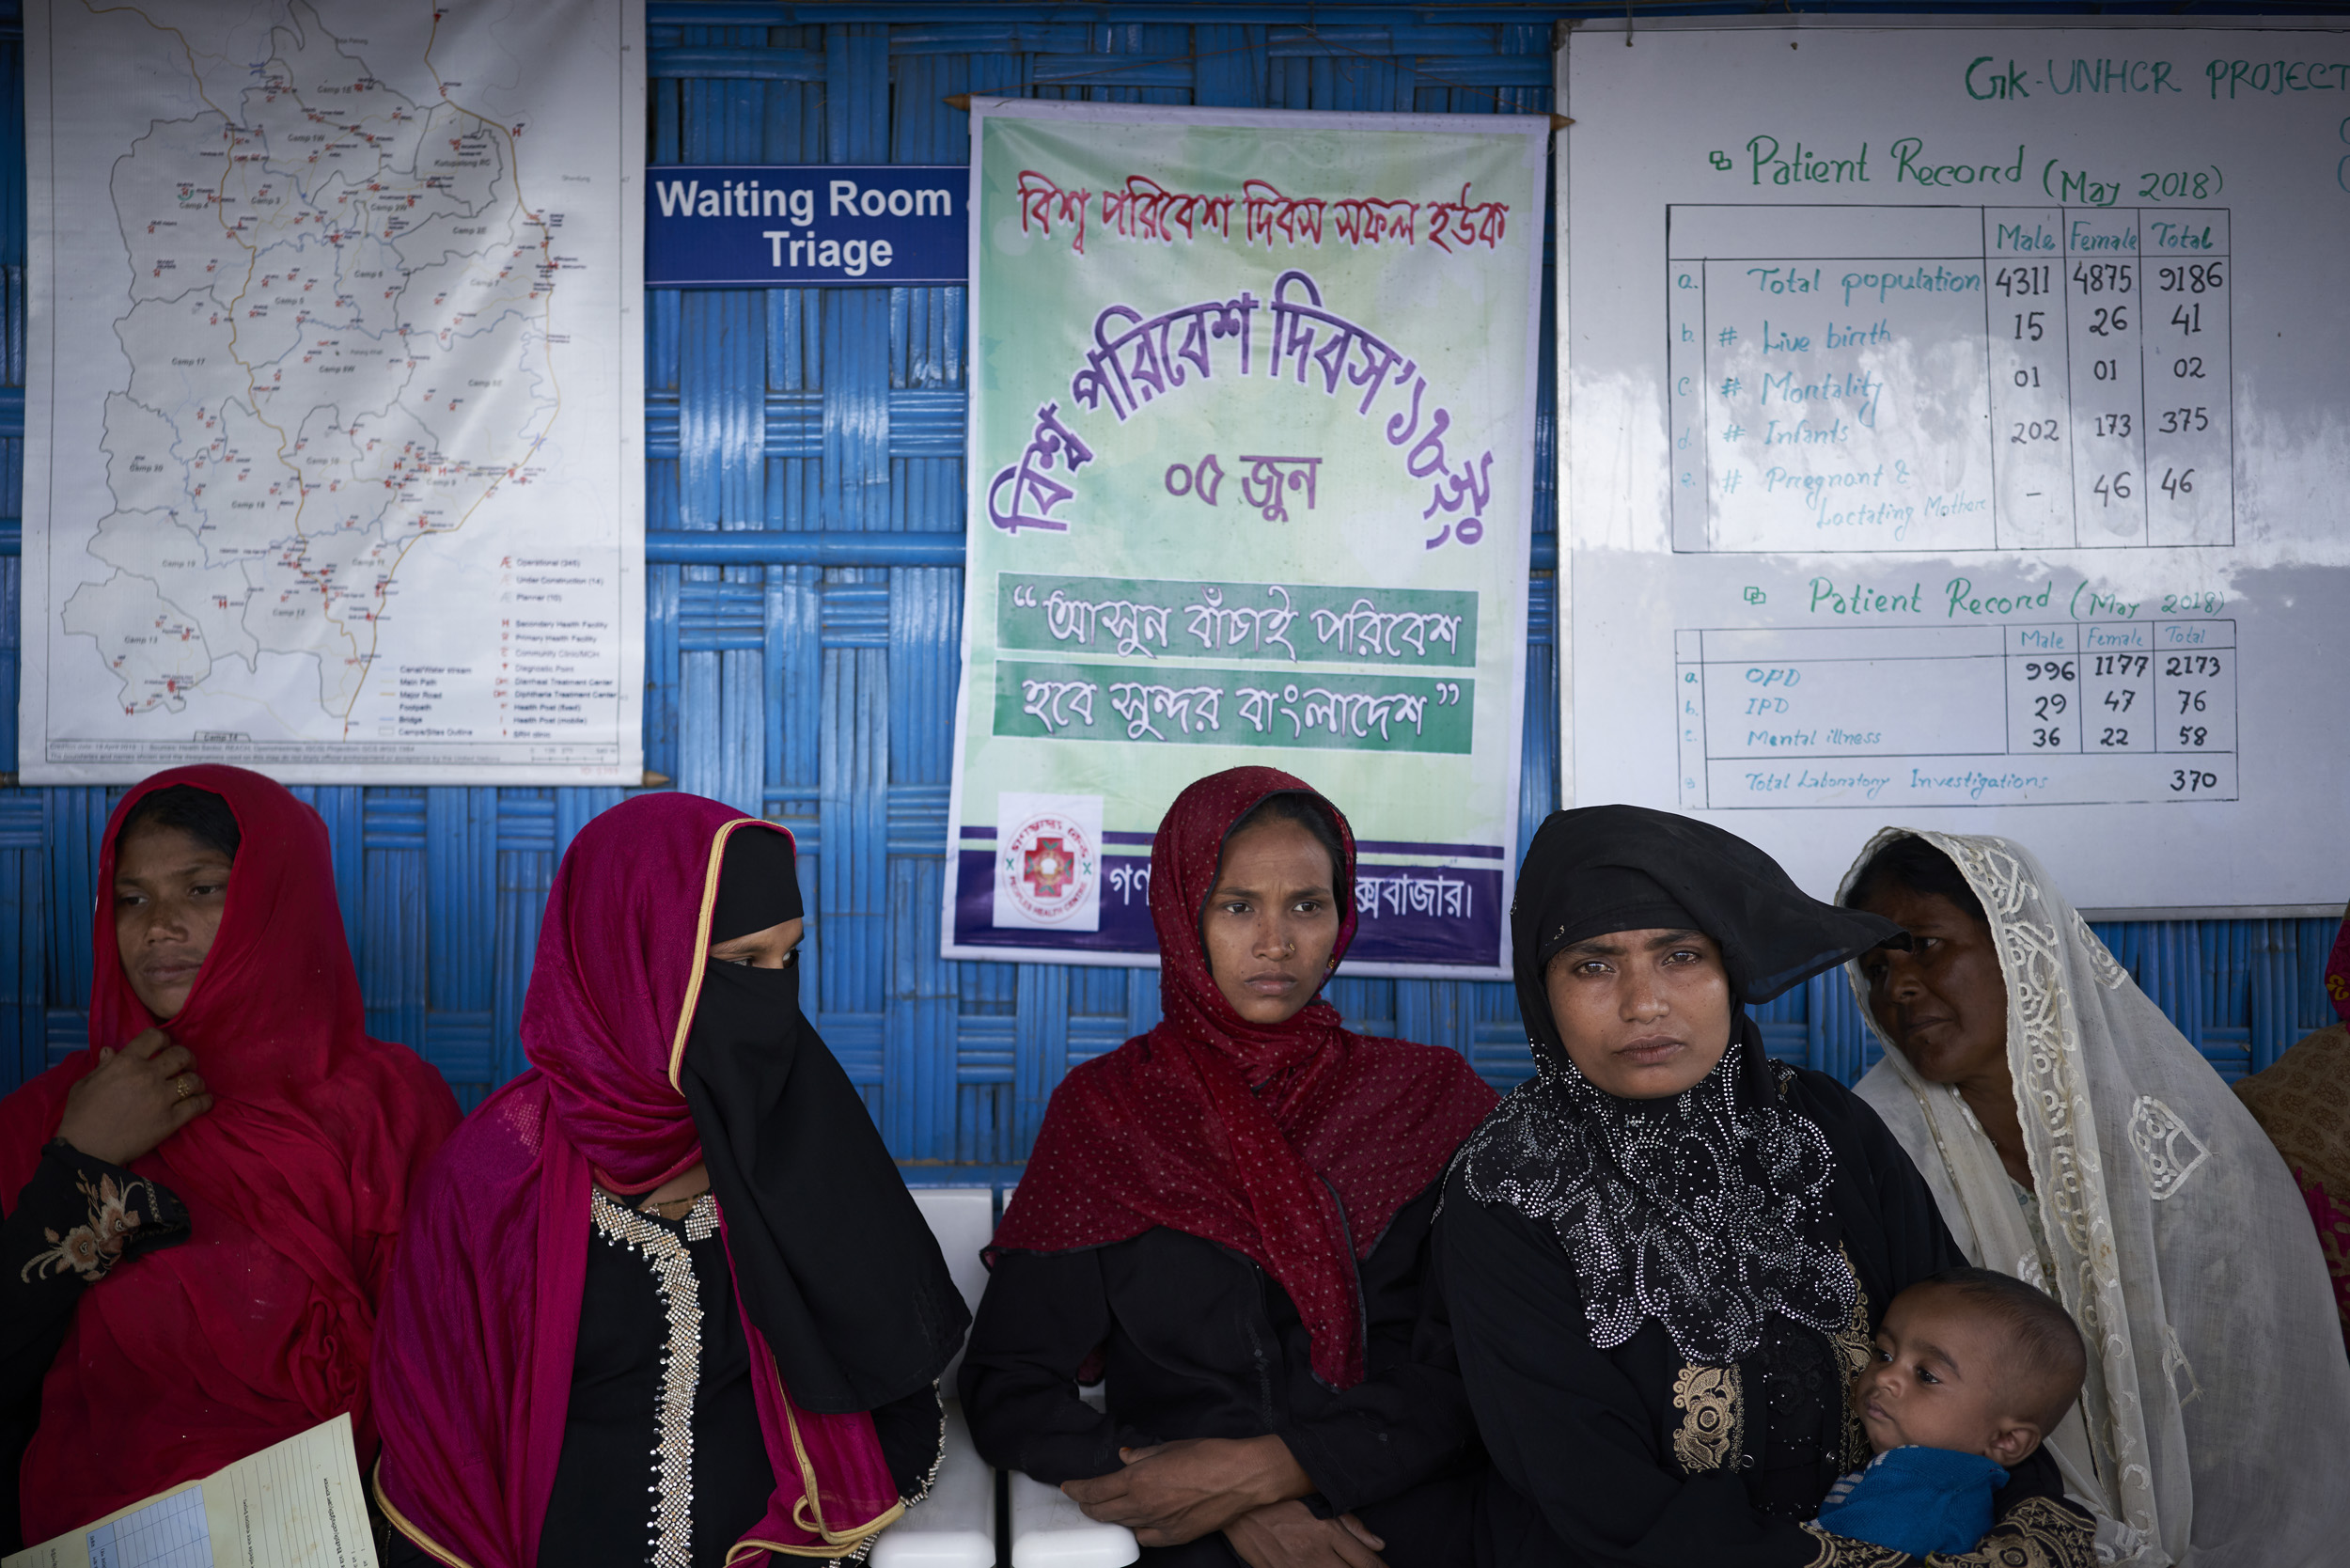 Rahana Begum, 30, second from right, holds her three-month-old infant Rokia, as she waits to be seen by a healthcare professional at the UNHCR primary health care clinic in Camp 4, Kutupalong Expansion Site for Rohingya refugees, Ukhia, Cox's Bazar District, Bangladesh.